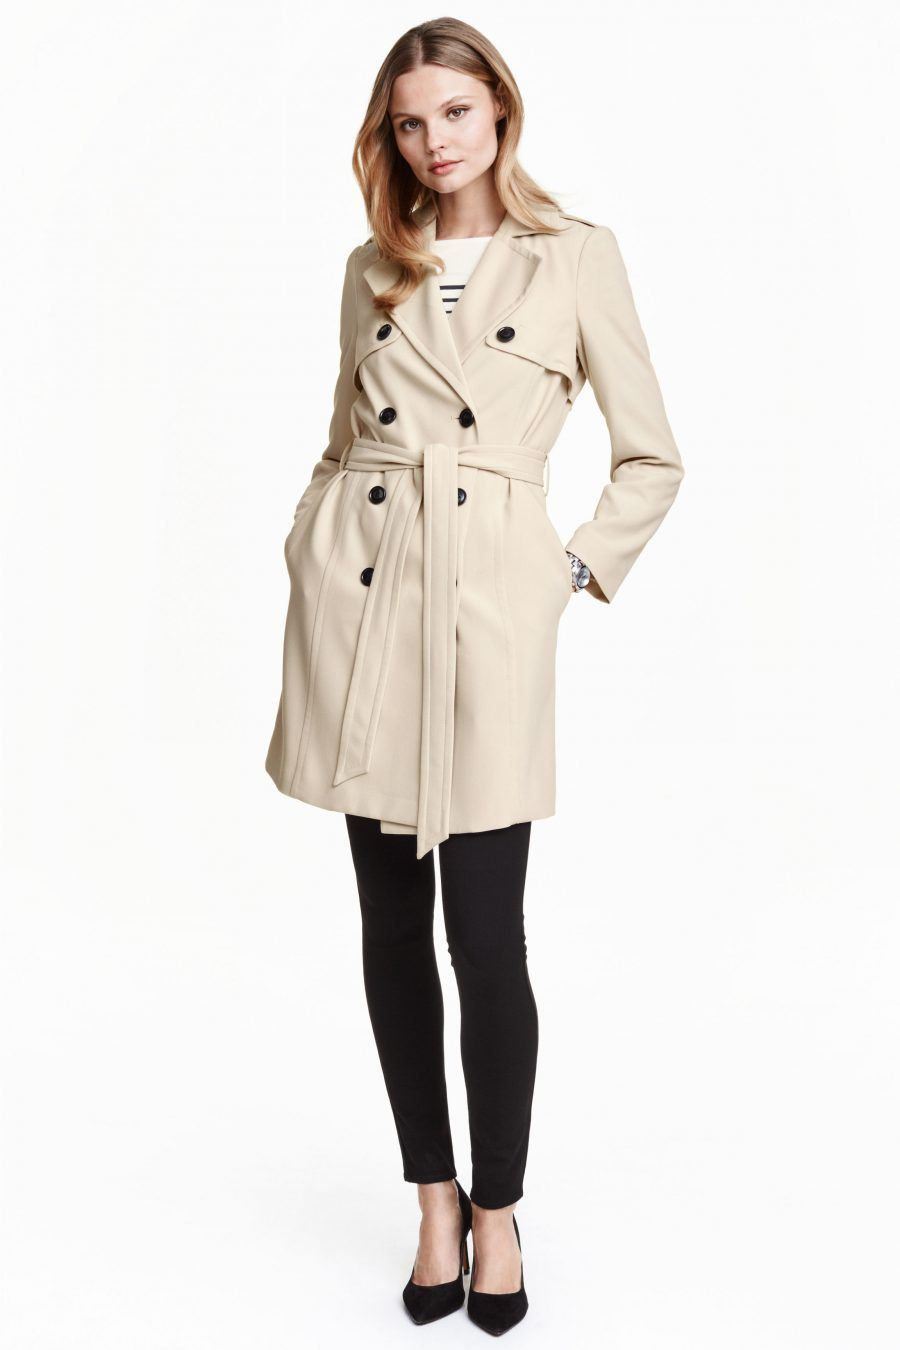 hm-autunno-2016-trench